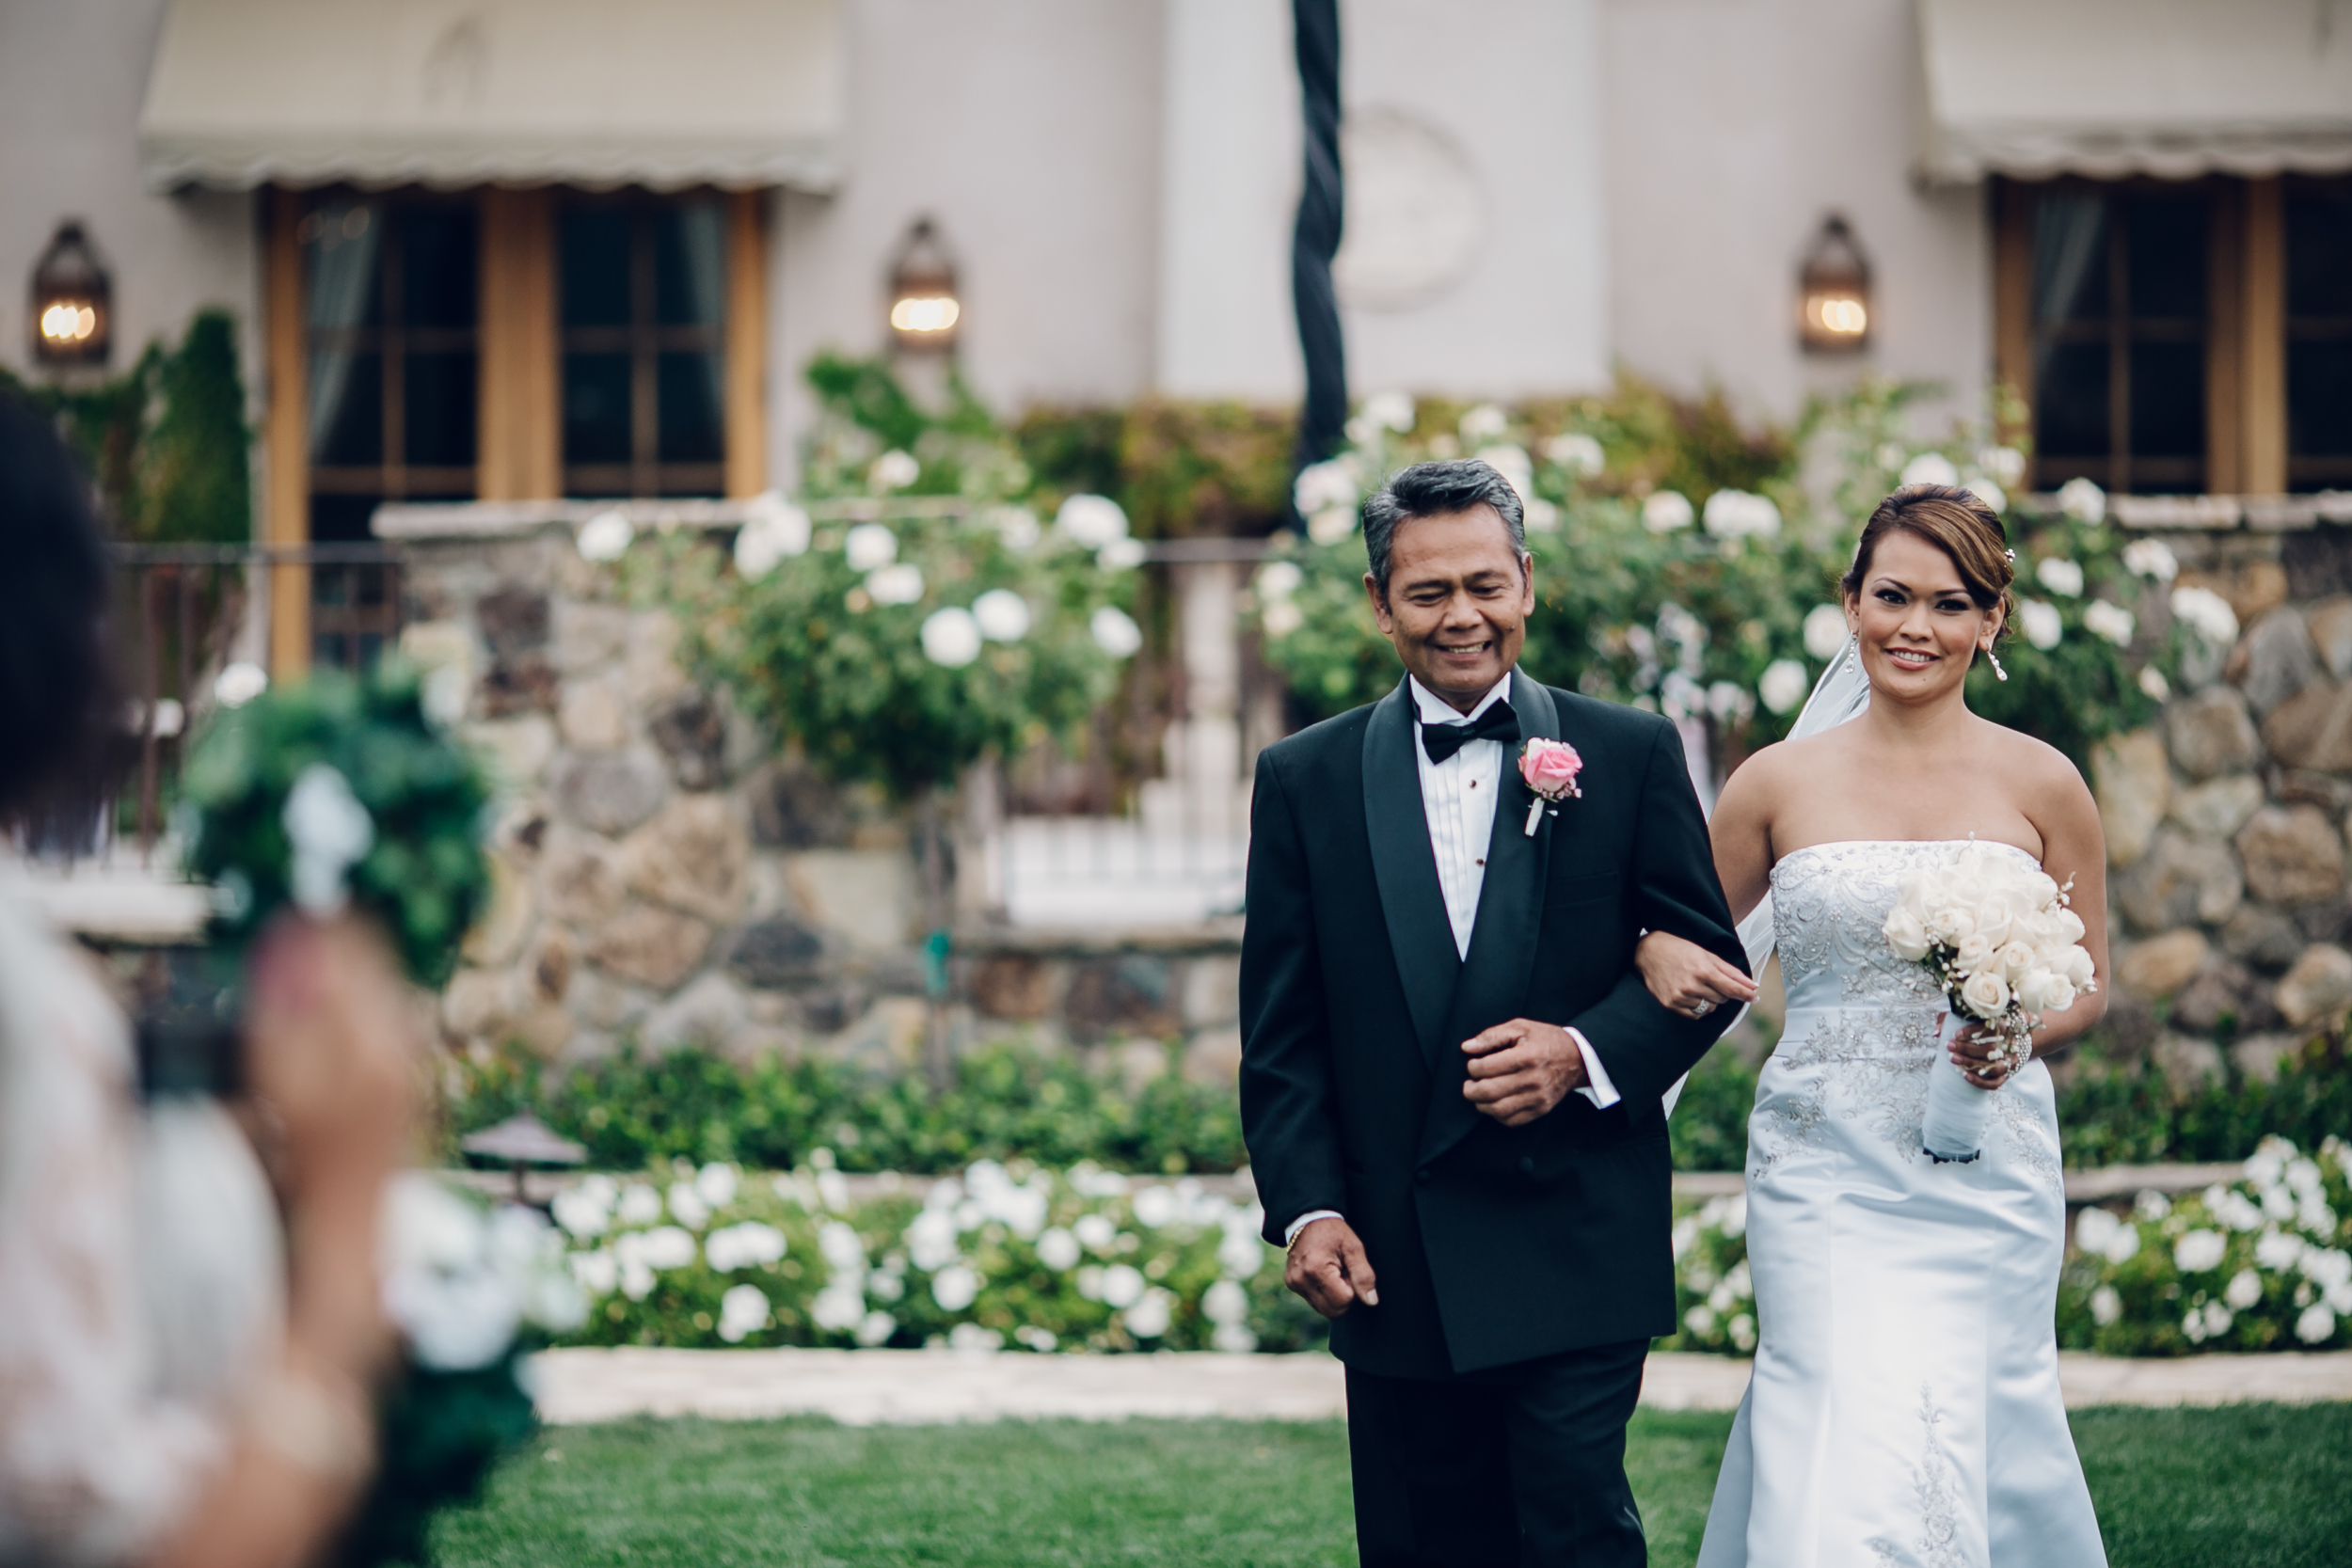 Shiela + Lester's Wedding 9-30-15 109.jpg